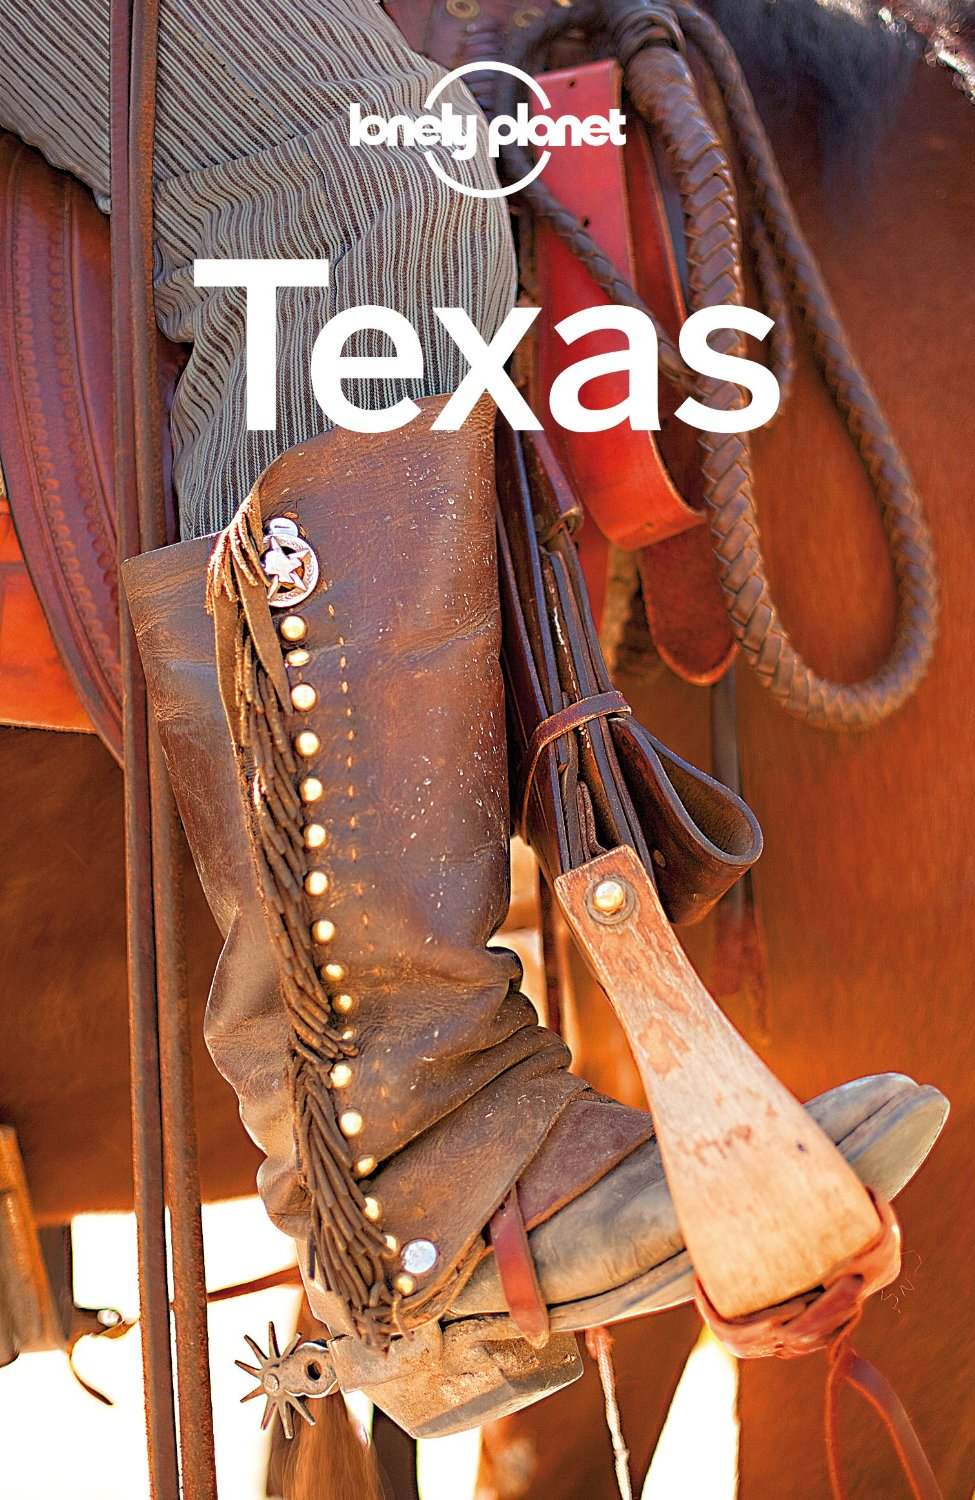 Lonely Planet Texas (Travel Guide) free download